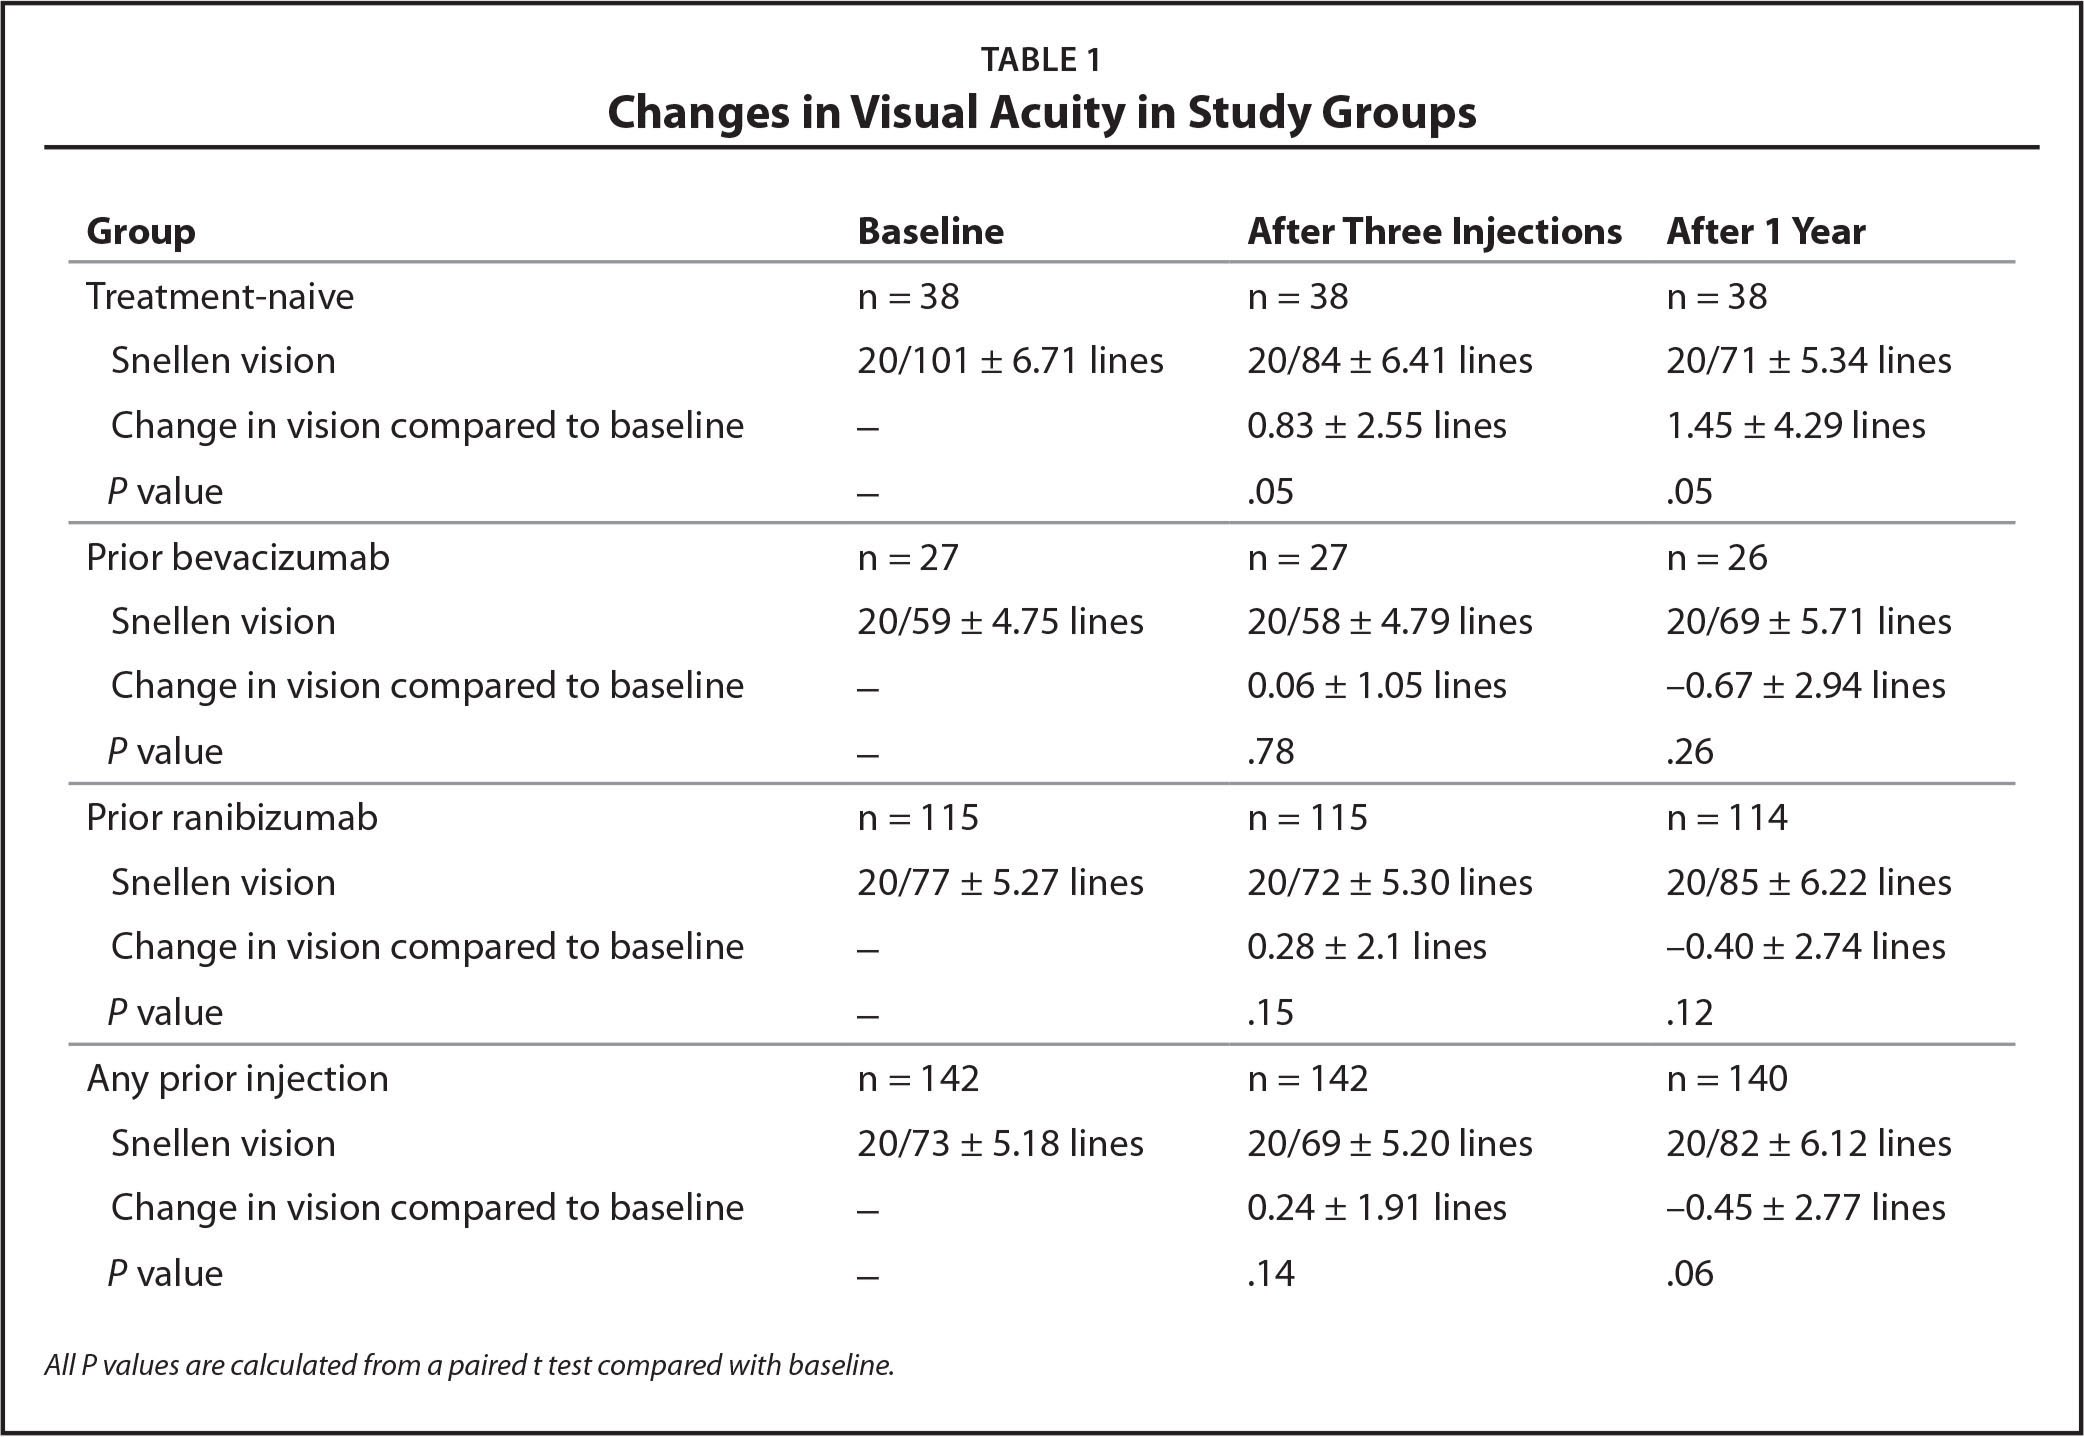 Changes in Visual Acuity in Study Groups